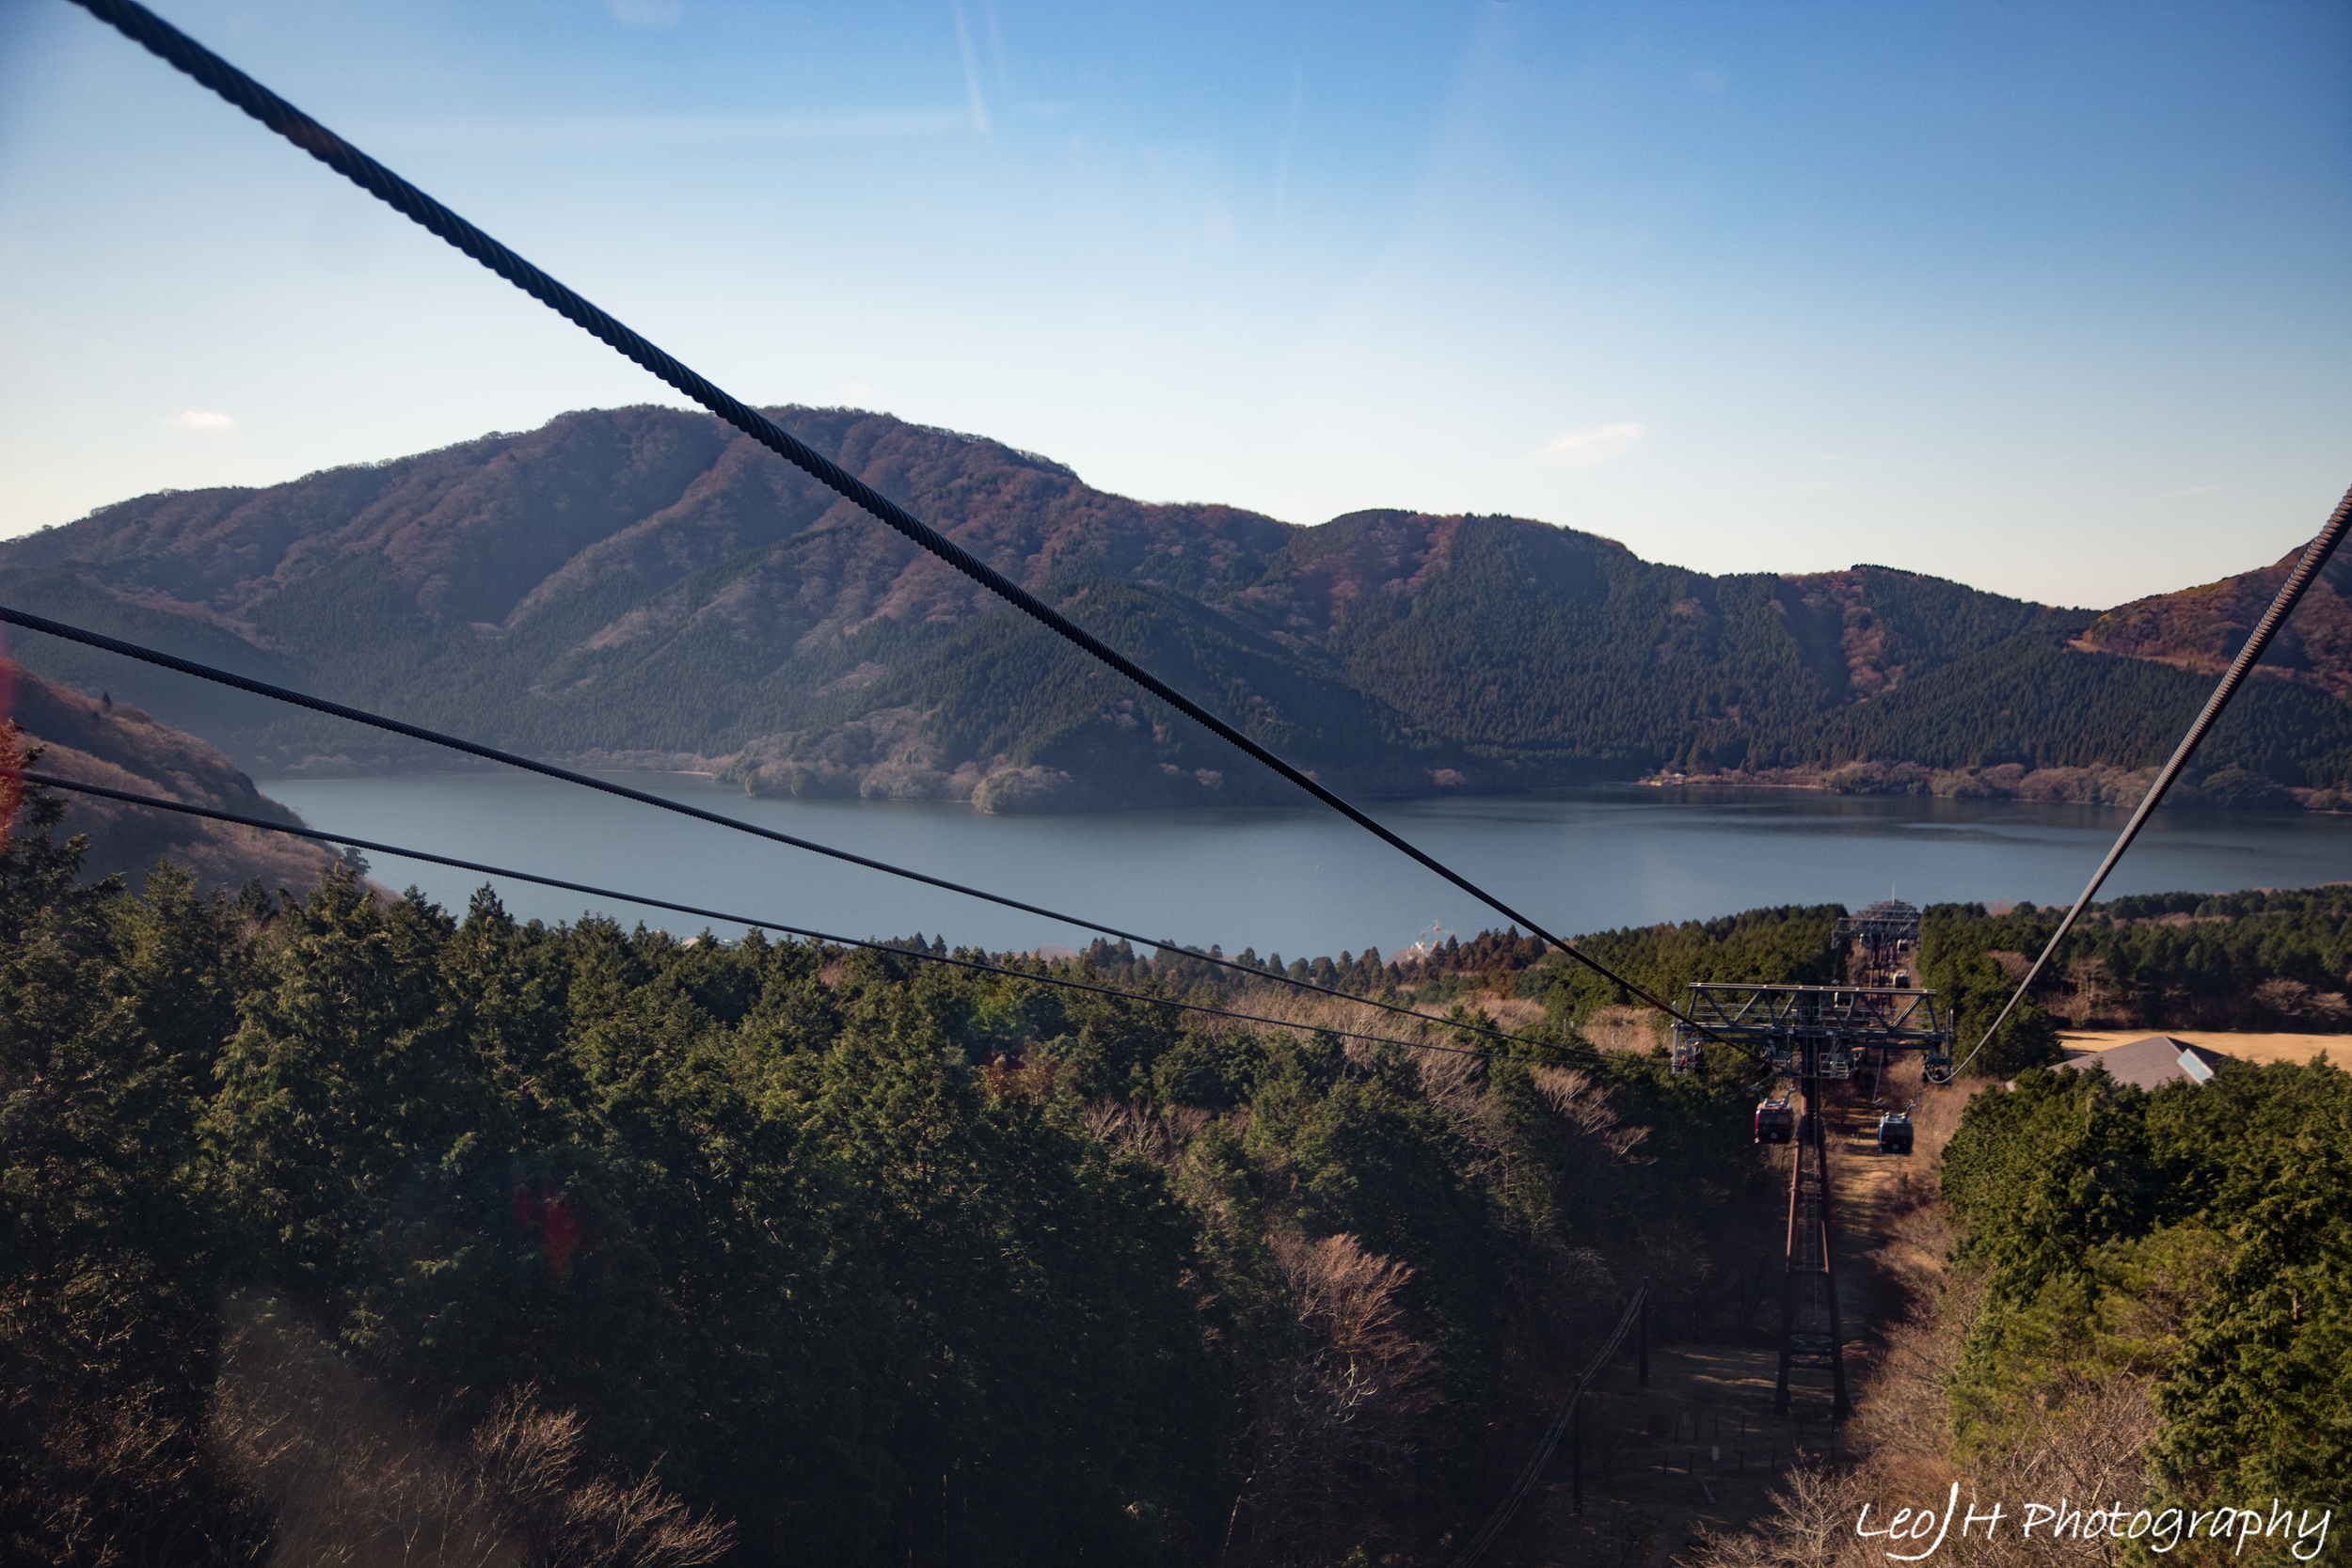 Ropeway down to Togendai Station with a wonderful view of the lake